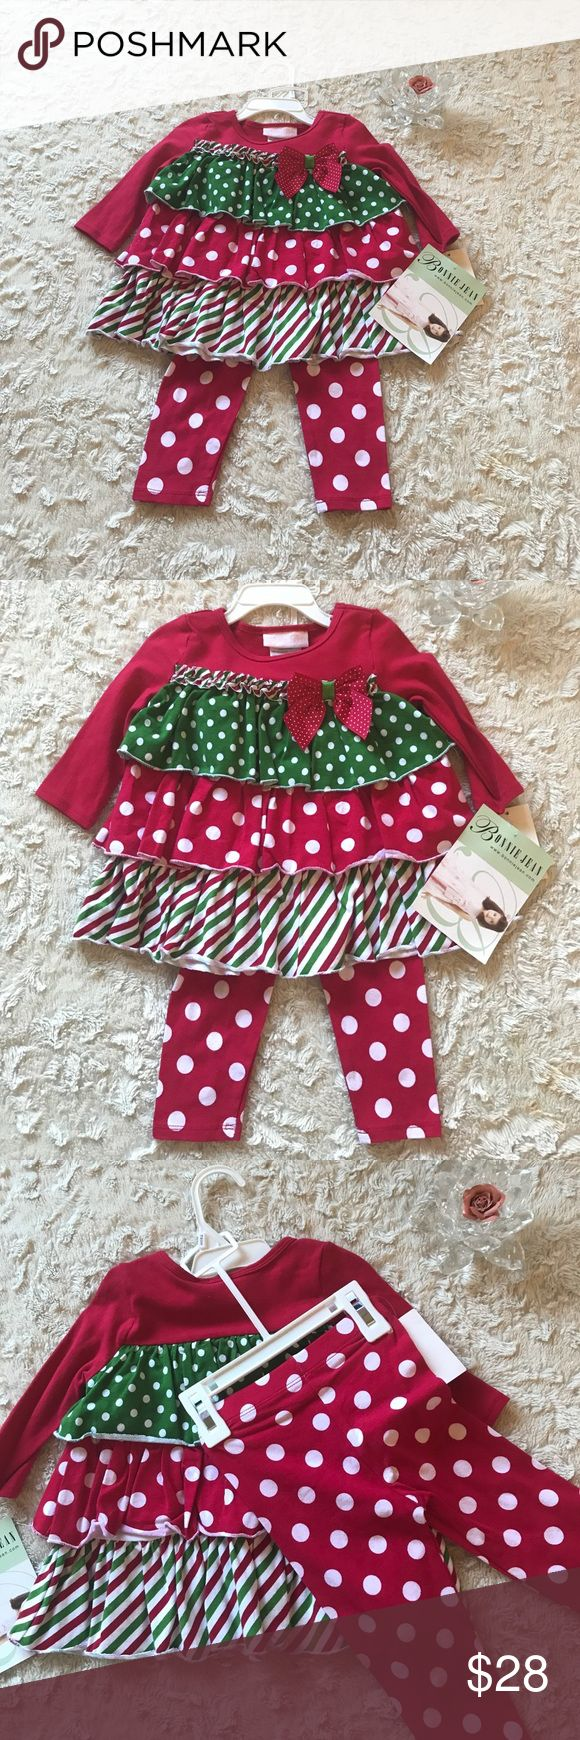 Bonnie baby Girl Holiday Tiered Legging Set 18m New with tags  Original price $40 Bonnie Baby Girl Christmas Holiday Tiered Legging Set Size 18 Months  Two piece holiday Christmas tiered set.  - Soft knit tiered top in holiday colors - Bow accent and matching polka dot leggings  Location : Winter Box Bonnie Jean Matching Sets